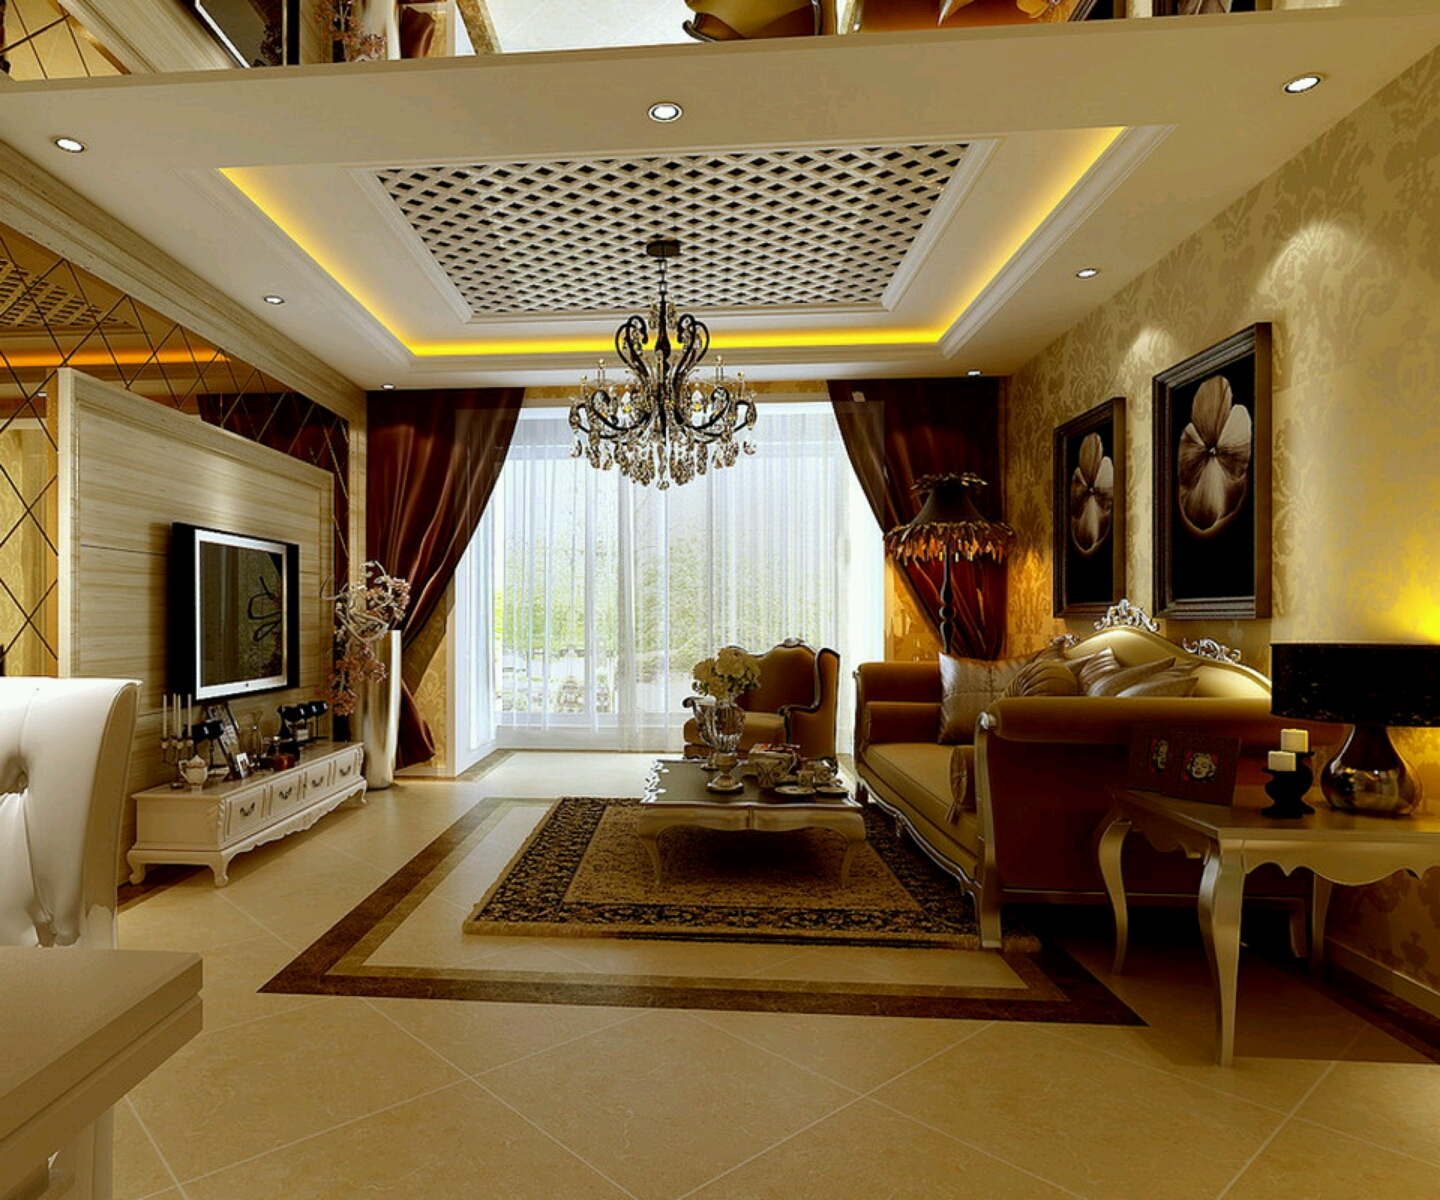 latest.: Luxury homes interior decoration living room designs ideas